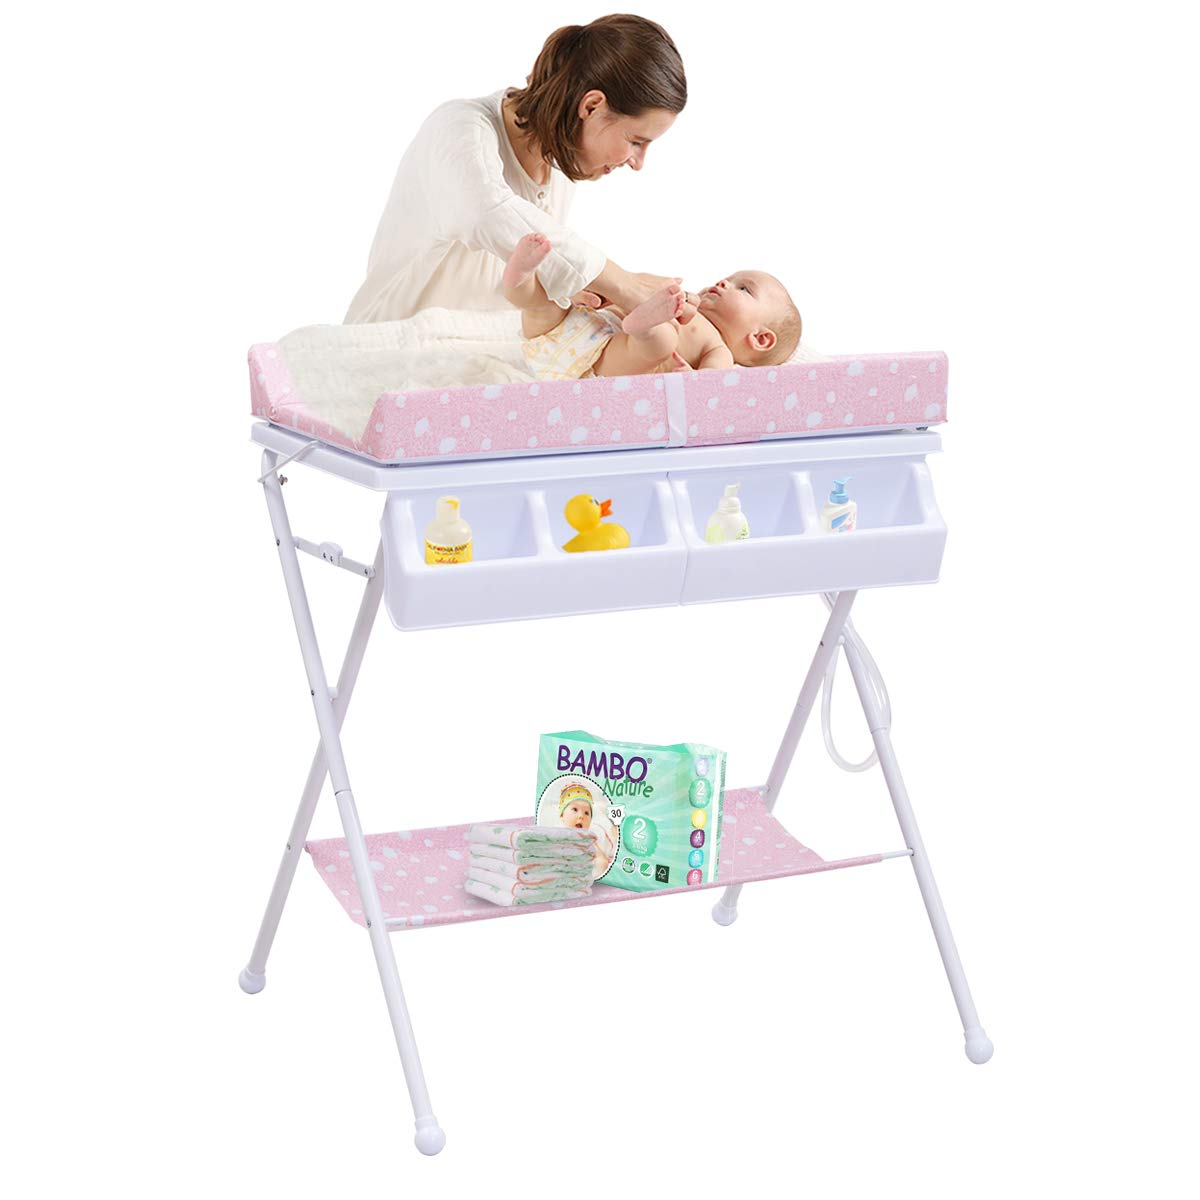 Costzon Baby Changing Table, Folding Diaper Station Nursery Organizer for Infant (Pink)